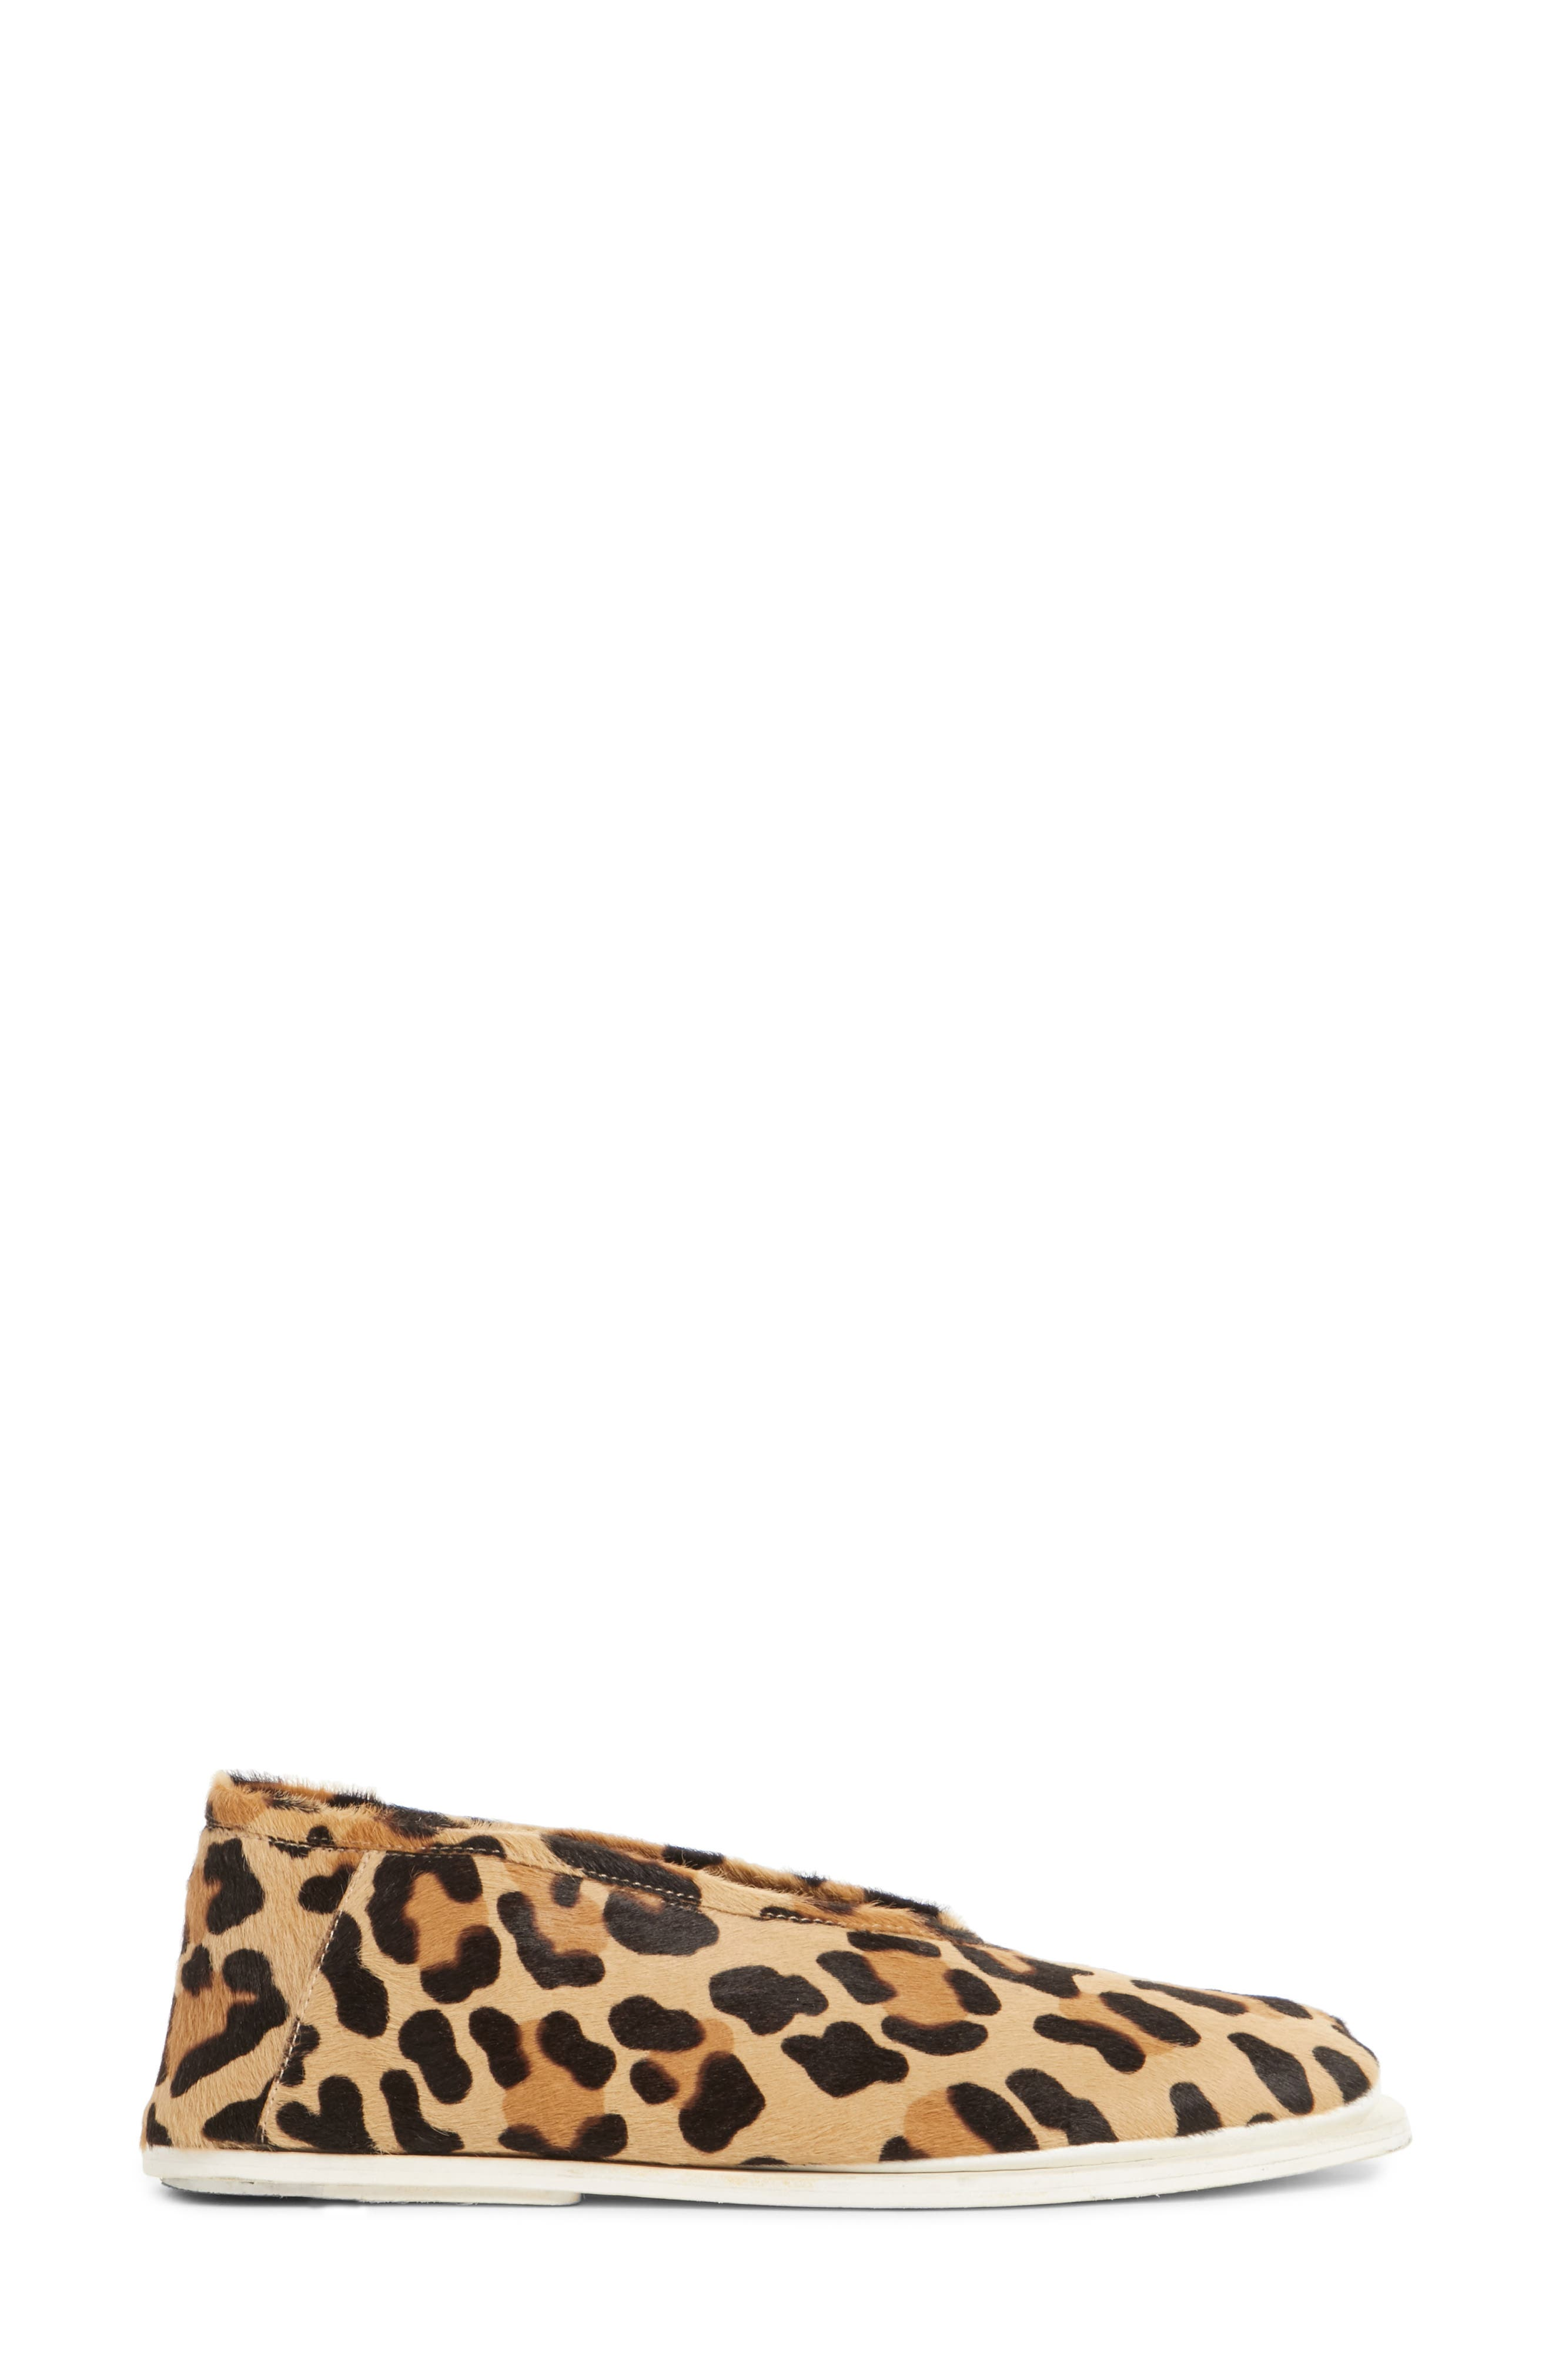 PSWL Genuine Calf Hair Convertible Loafer,                             Alternate thumbnail 2, color,                             Leopard Print